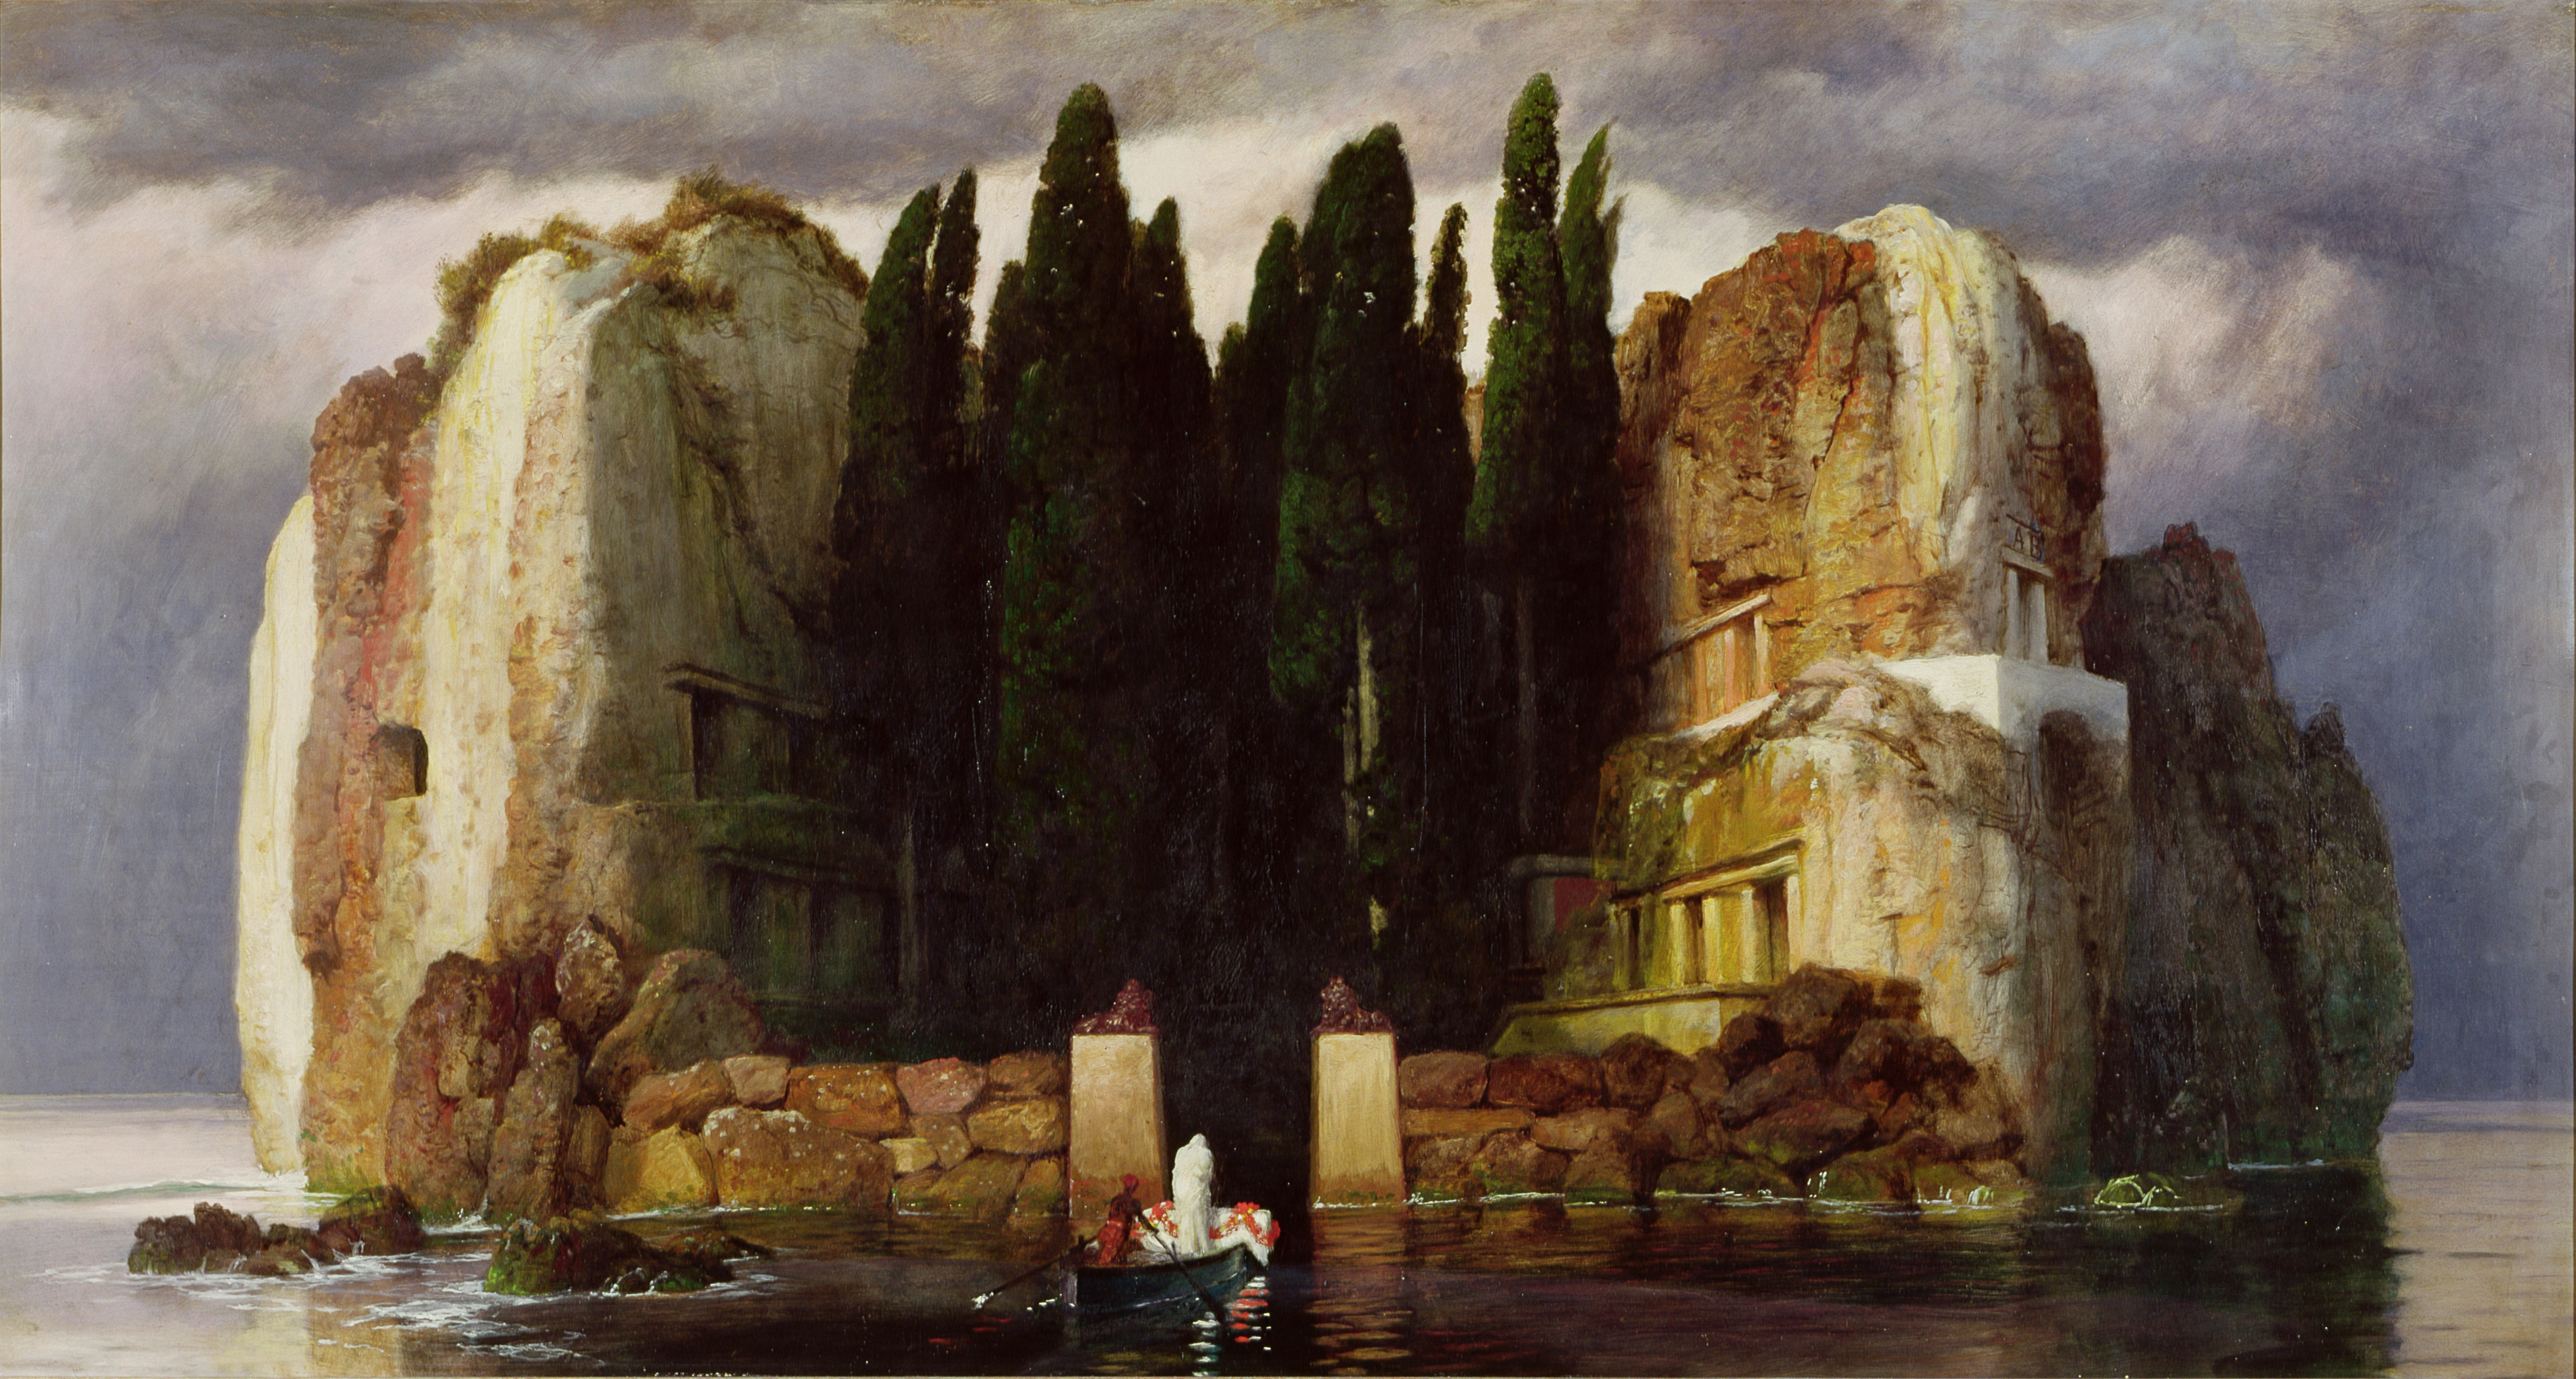 The Isle of the Dead V, by Arnold Böcklin, 1886.